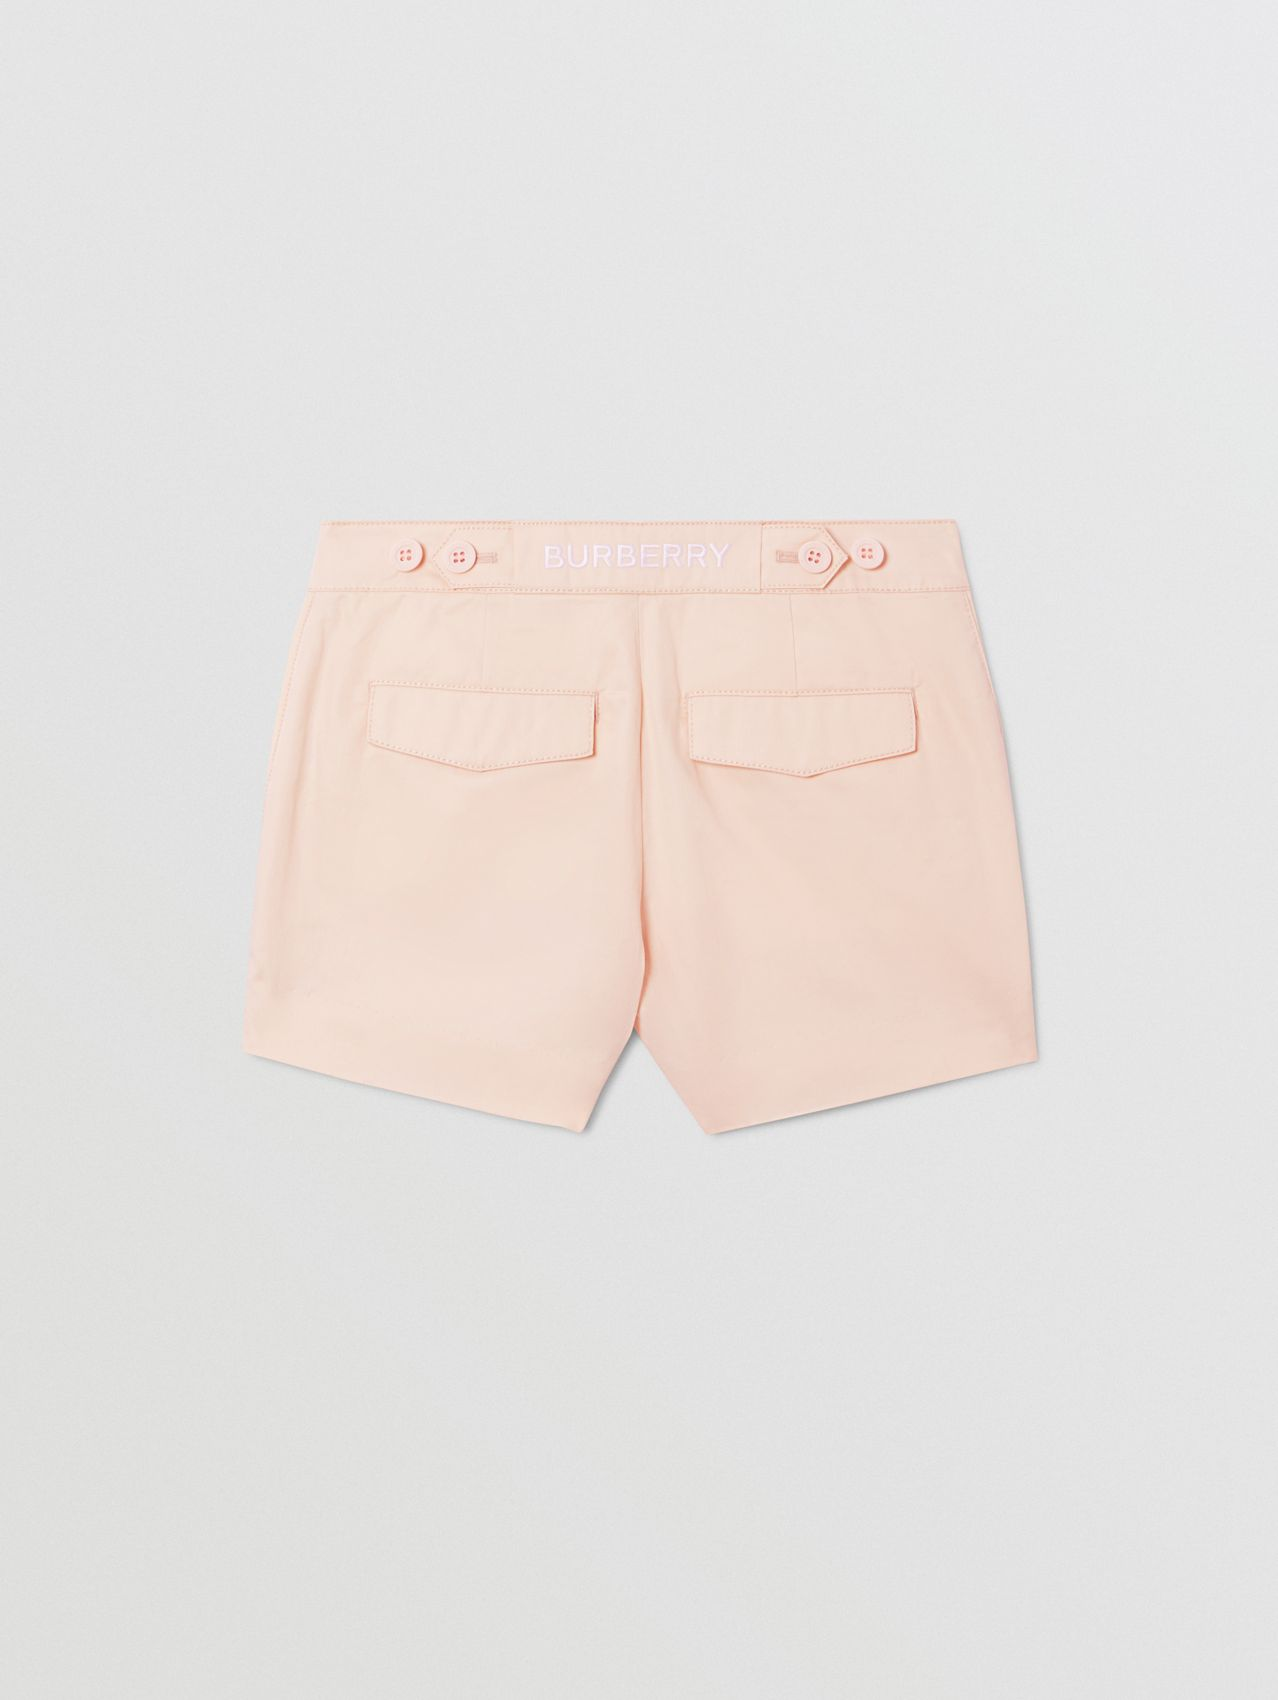 Embroidered Logo Cotton Shorts (Soft Pink)